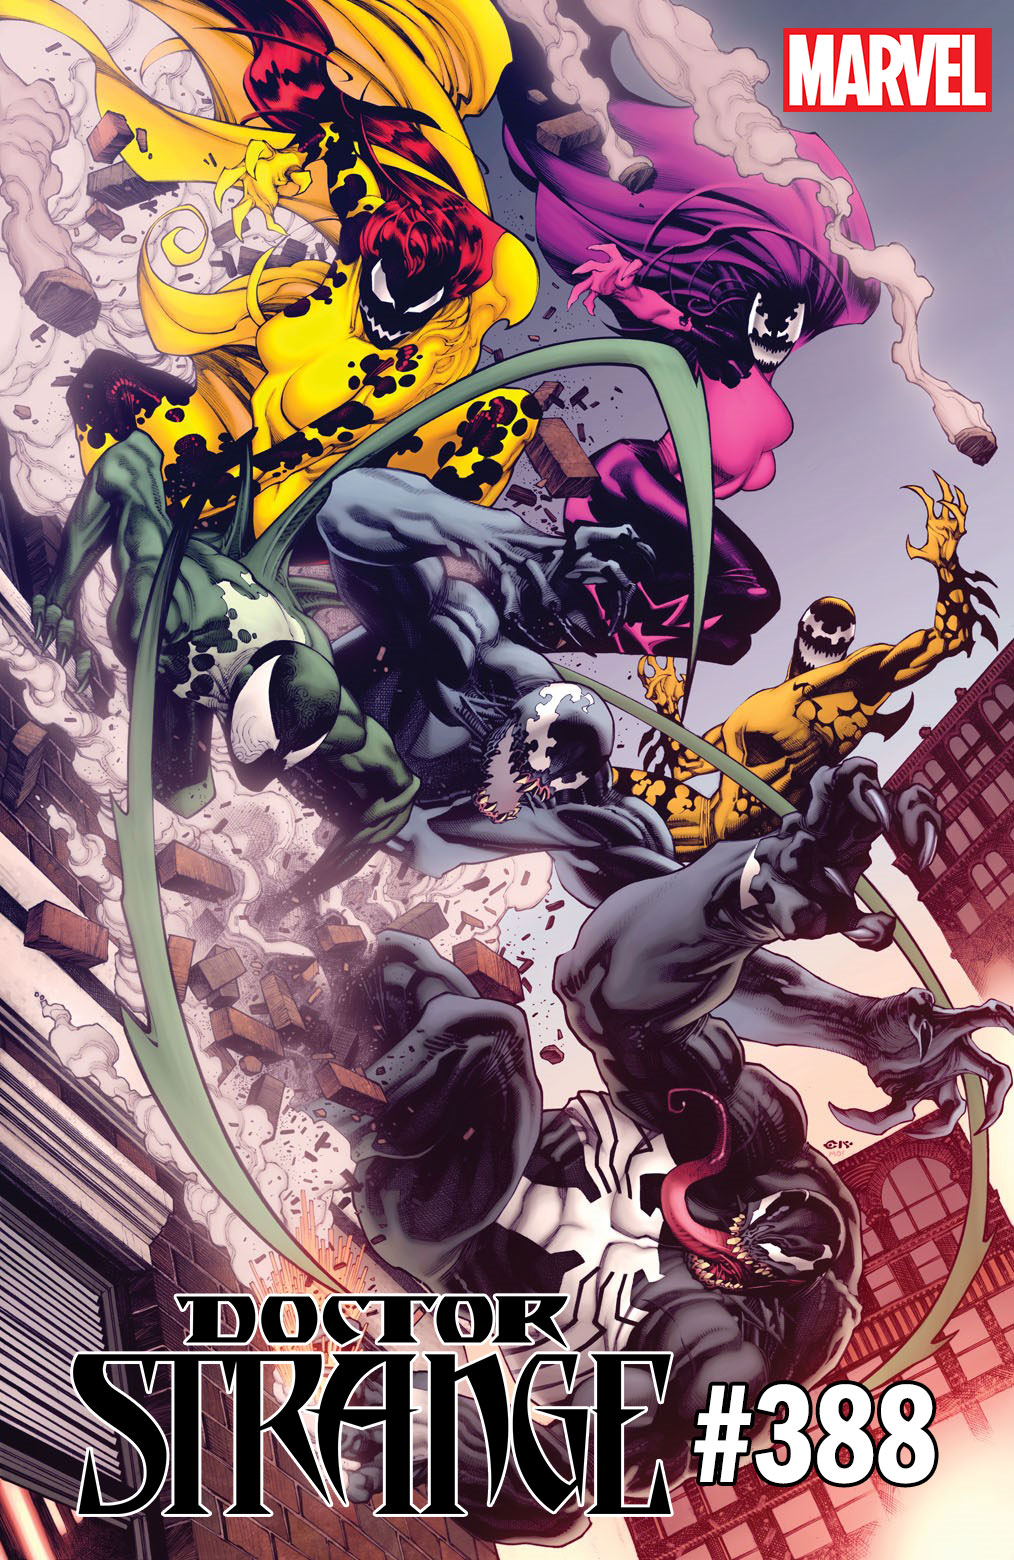 Venom 30th Anniversary variant covers arrive this March